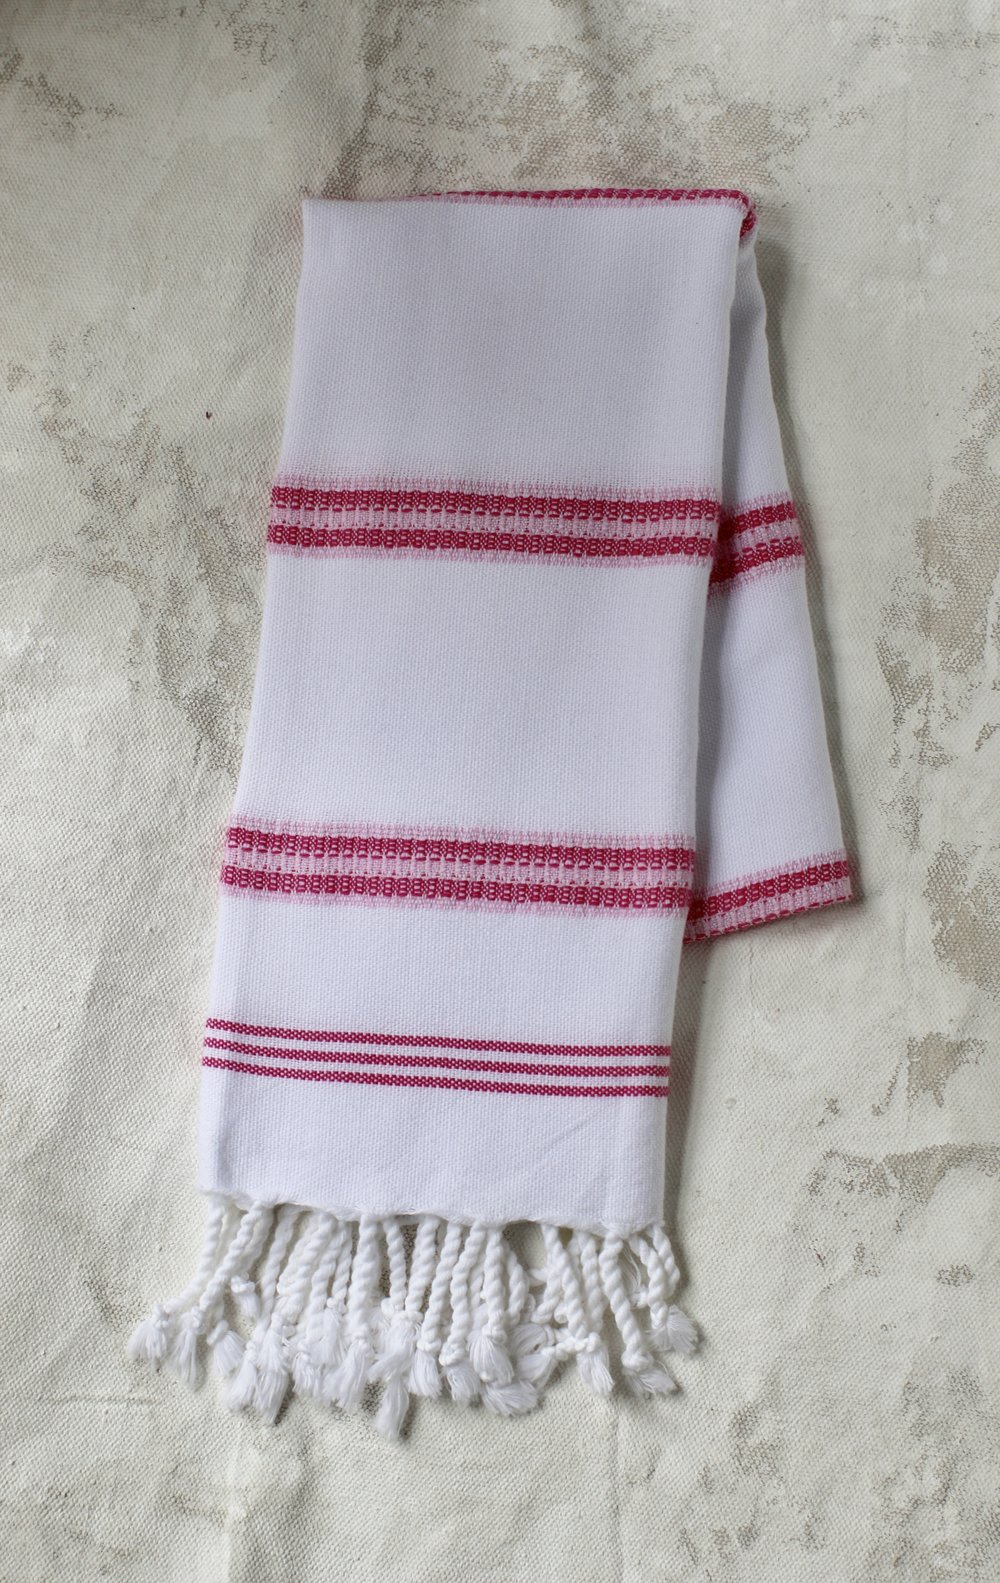 Peskir - Bengal Striped pink - $22